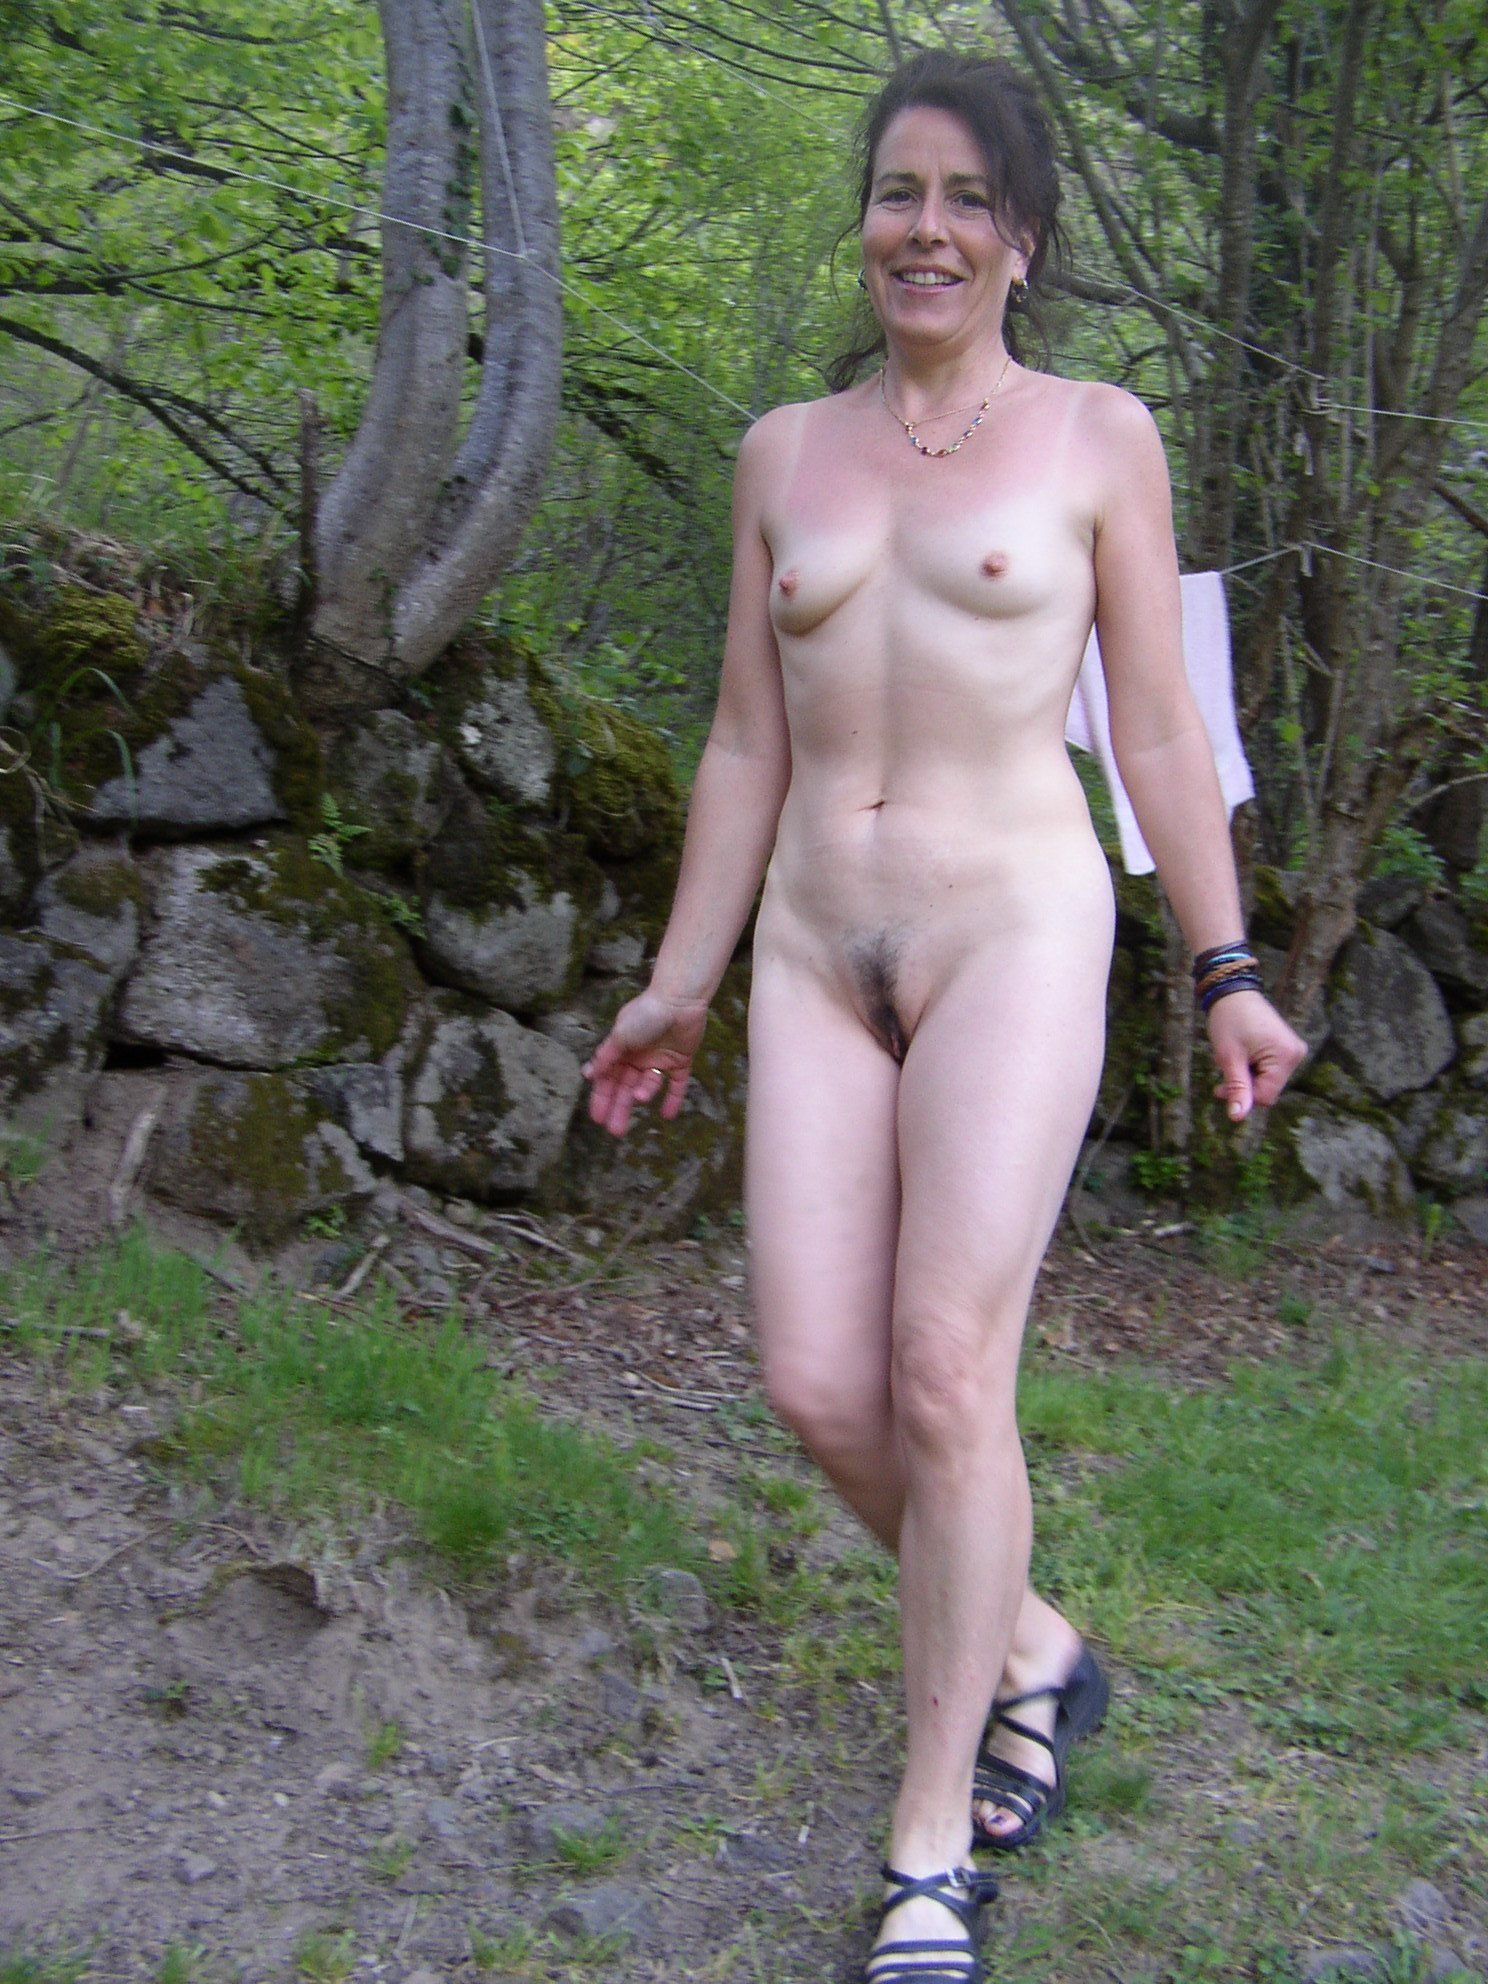 best of Wife outside Free nude